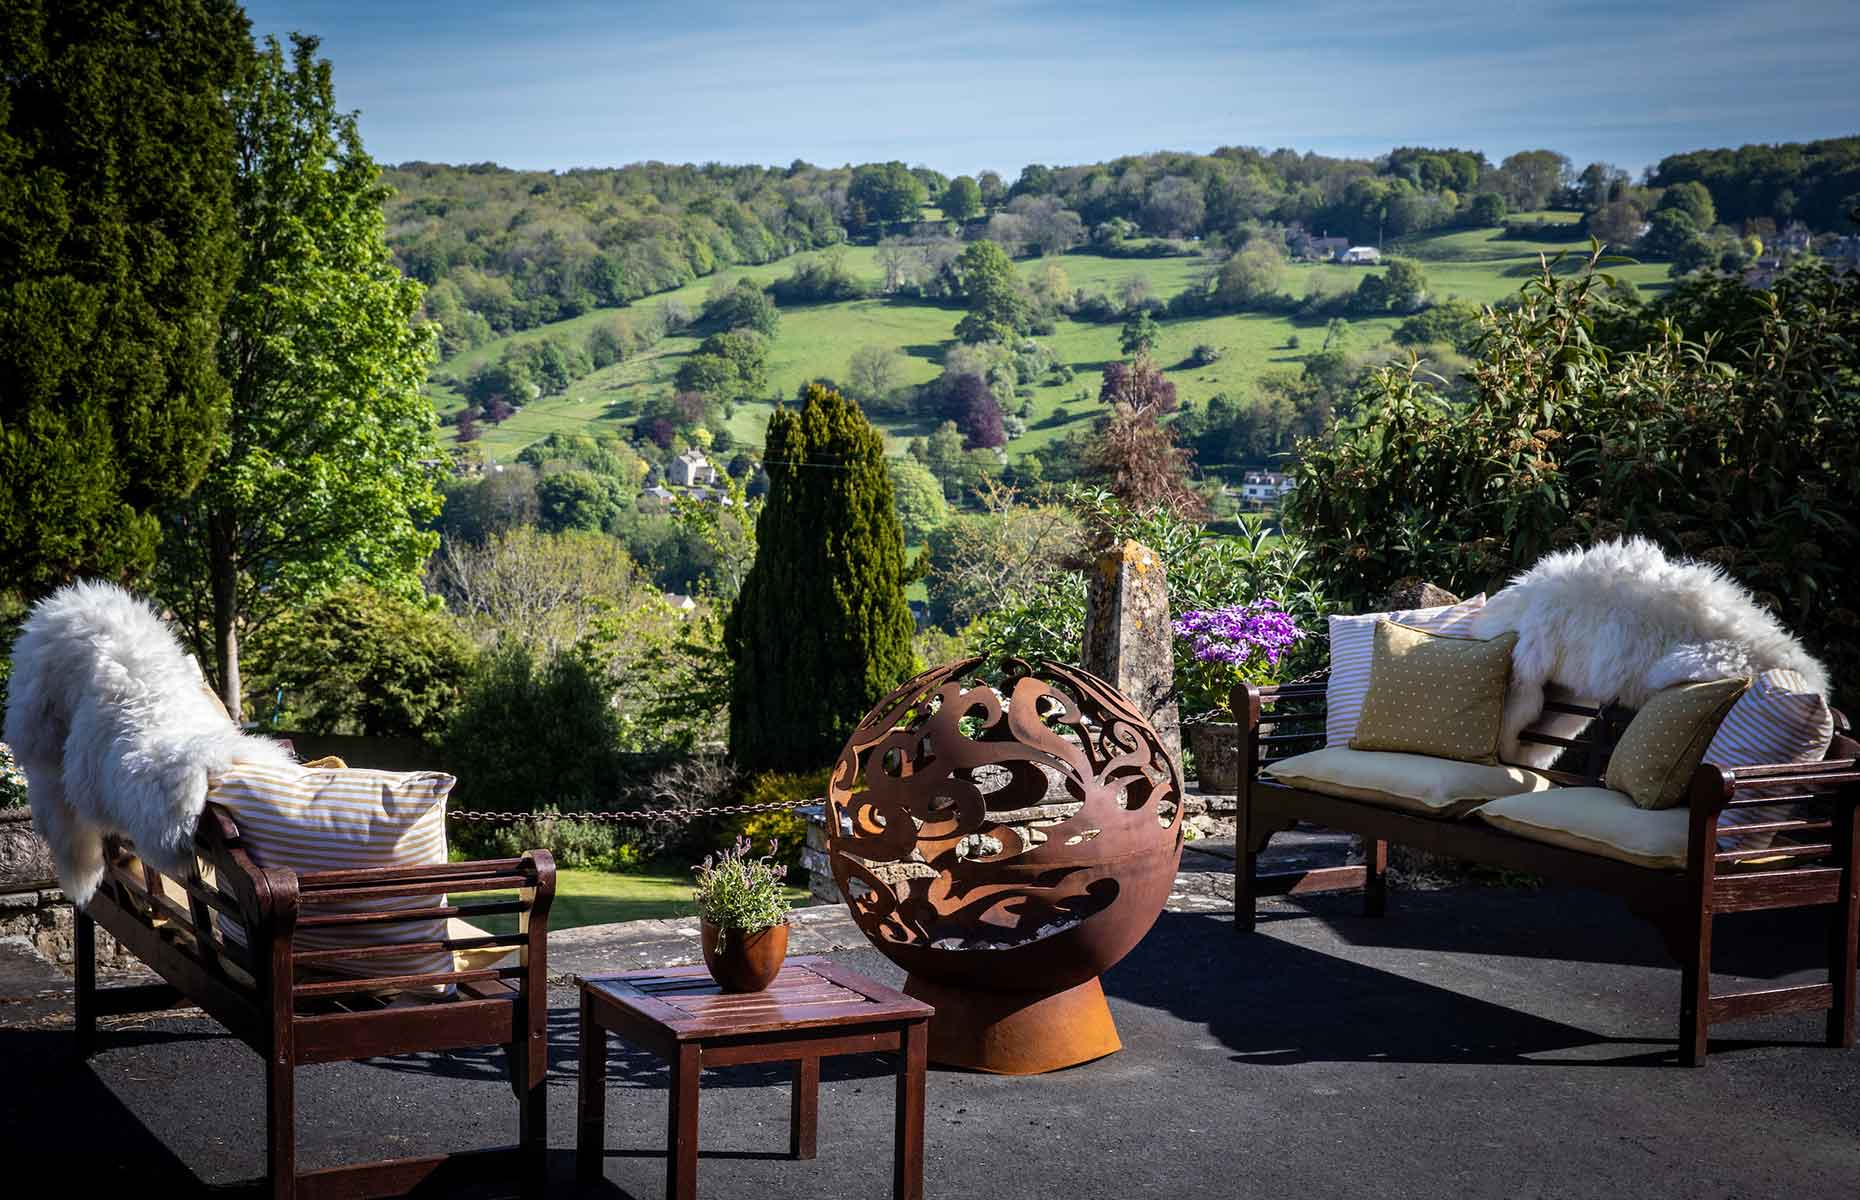 View from Burleigh Court (Image: Burleigh Court Photography)